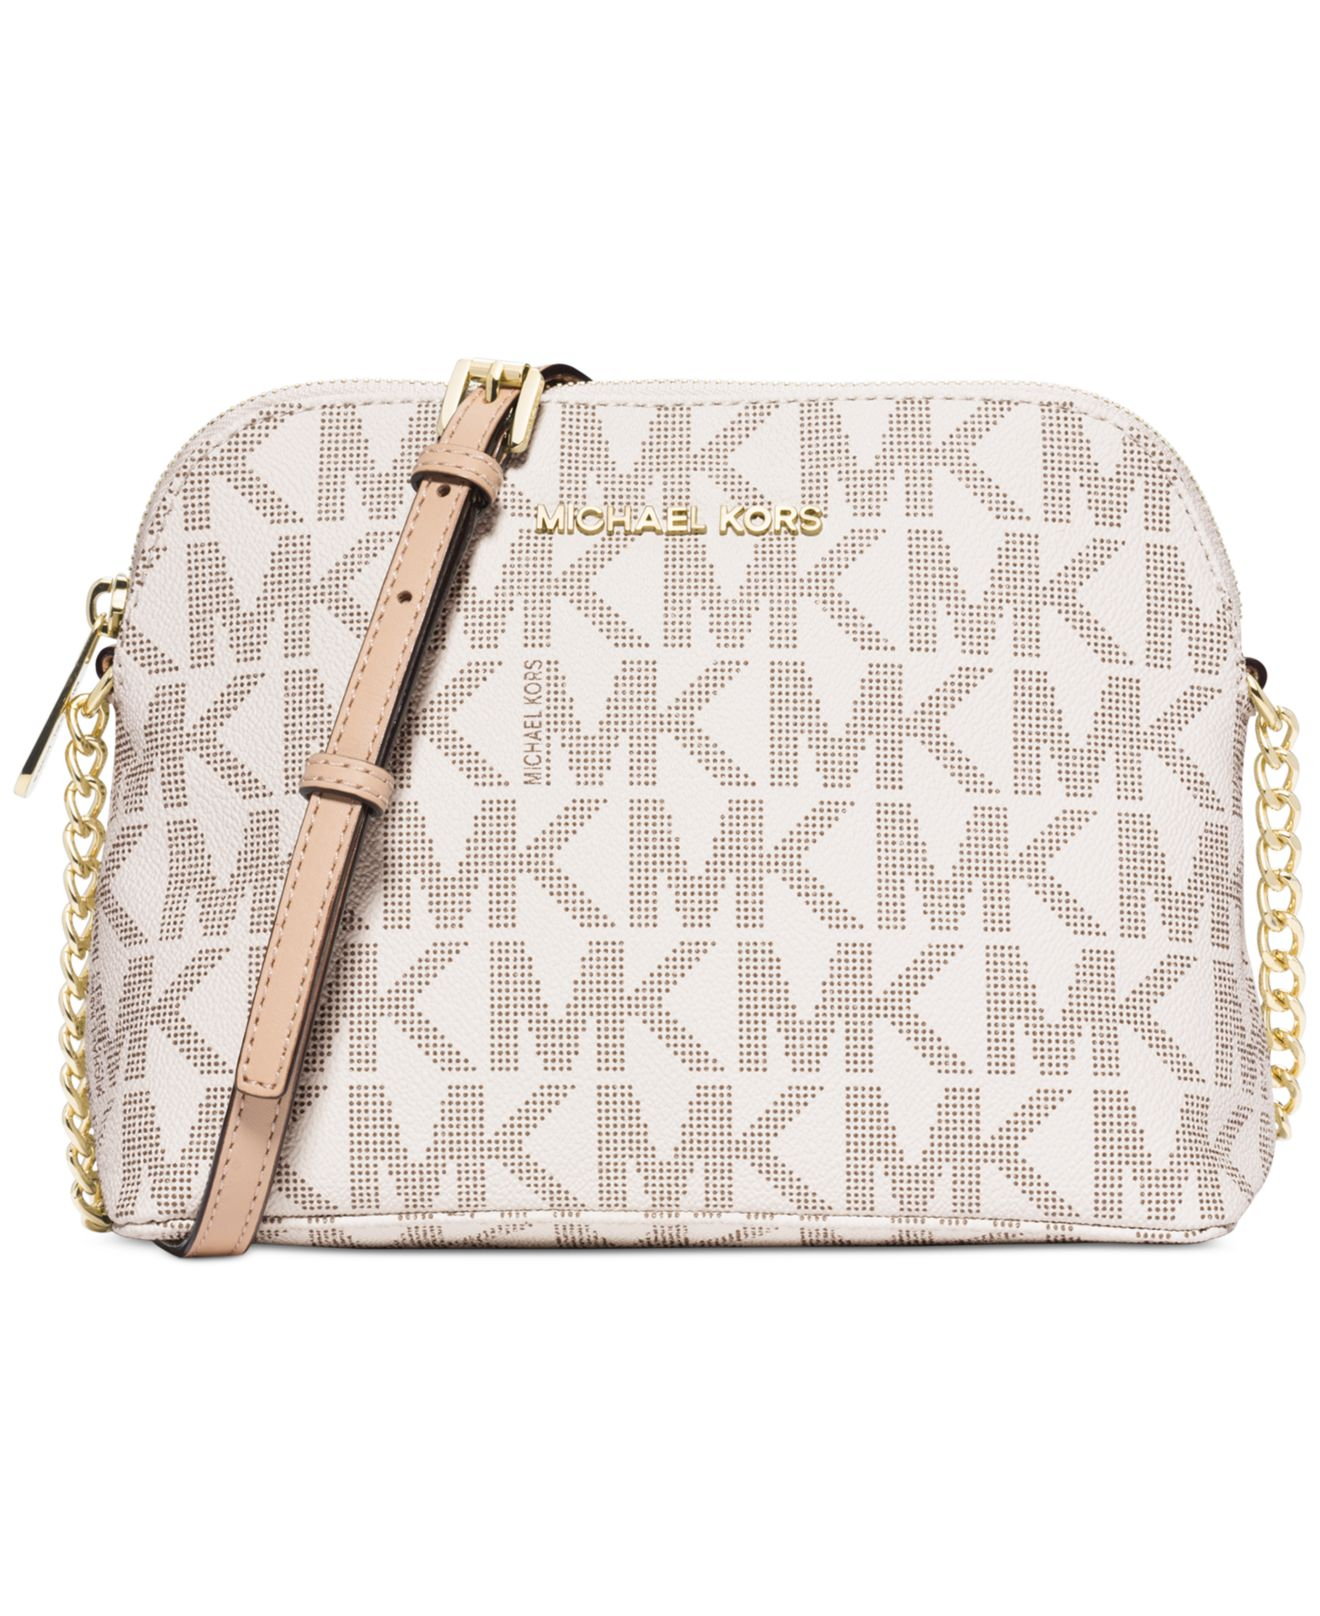 e9cc30040be0e9 switzerland michael michael kors crossbody bags dillards 19961 be4f4; cheap  lyst michael kors michael cindy large dome crossbody in natural ba16b df26a